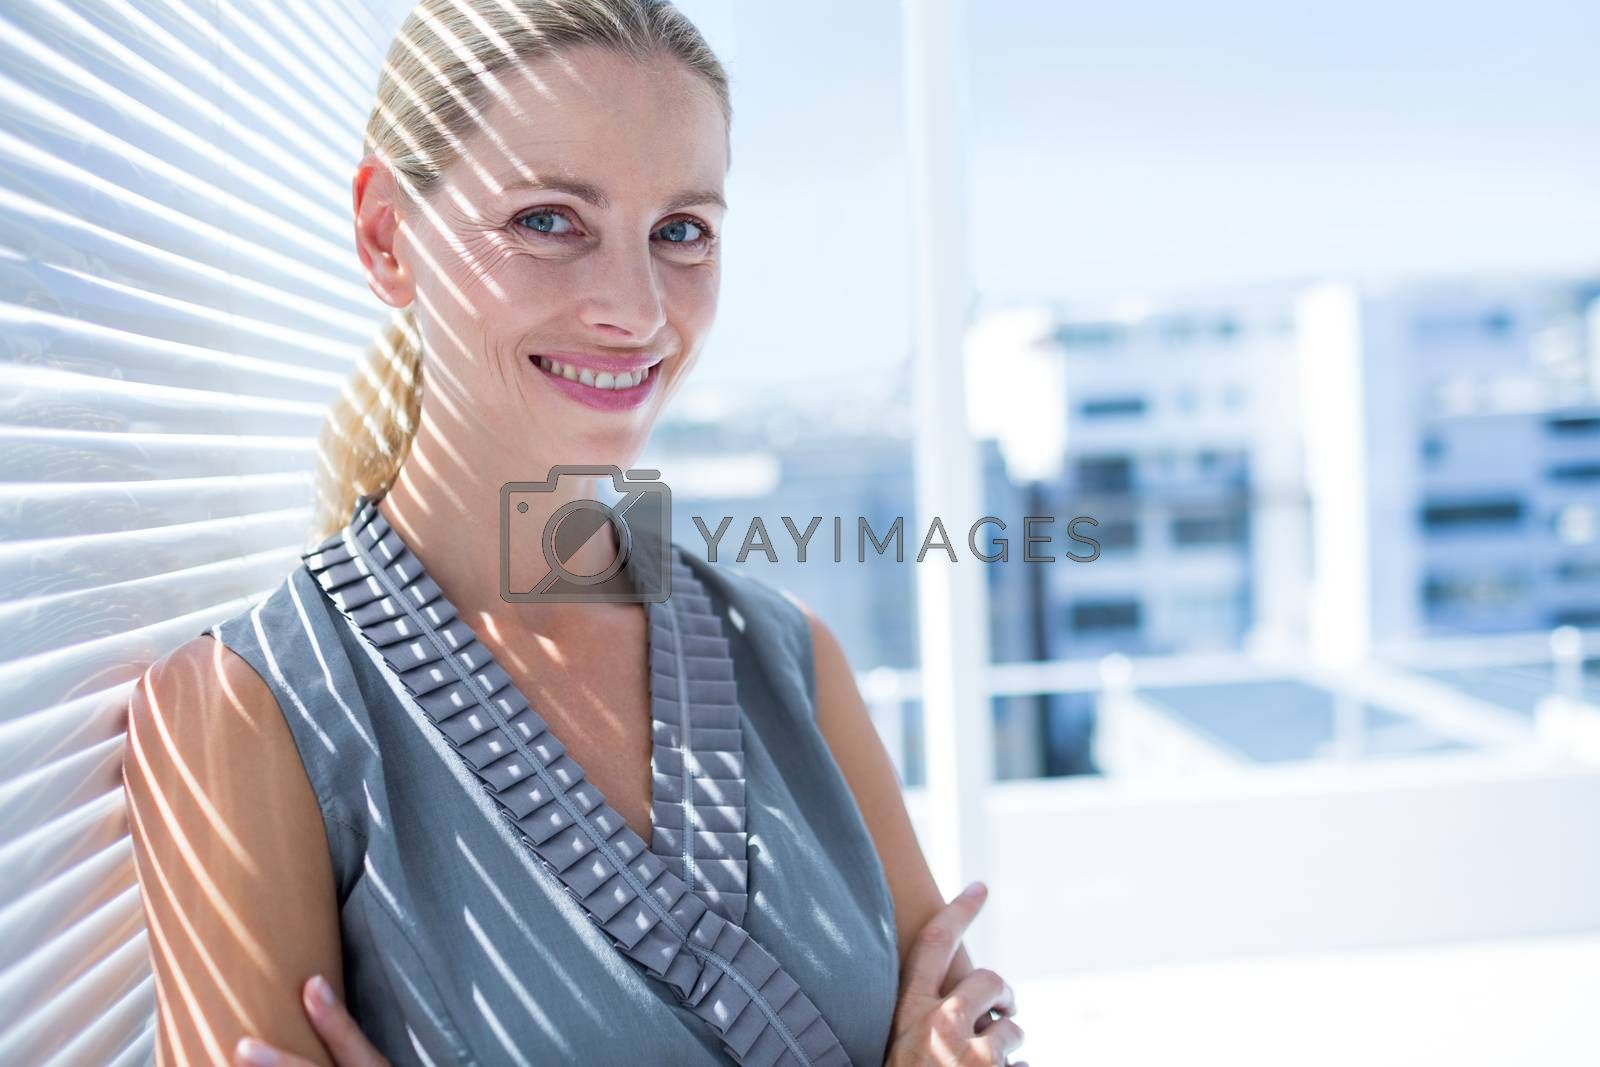 Royalty free image of Smiling businesswoman standing in the office by Wavebreakmedia